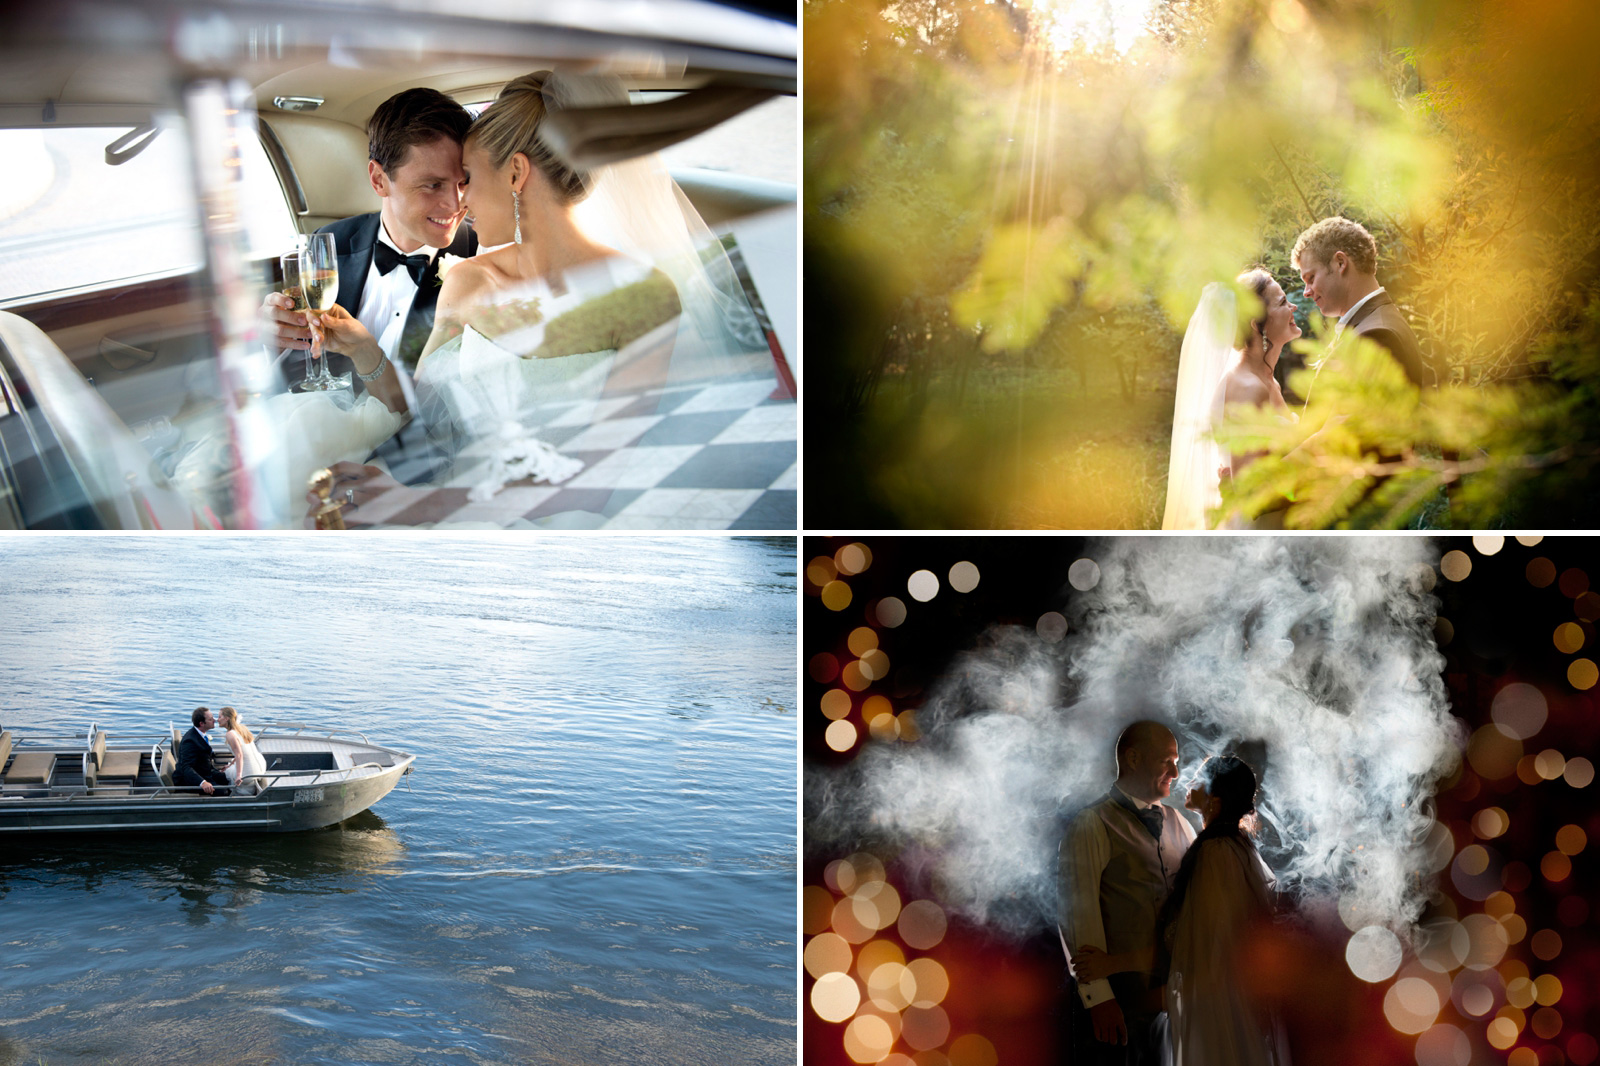 Jacki-Bruniquel-Top-South-African-Wedding-Photographer-Durban-Based-009